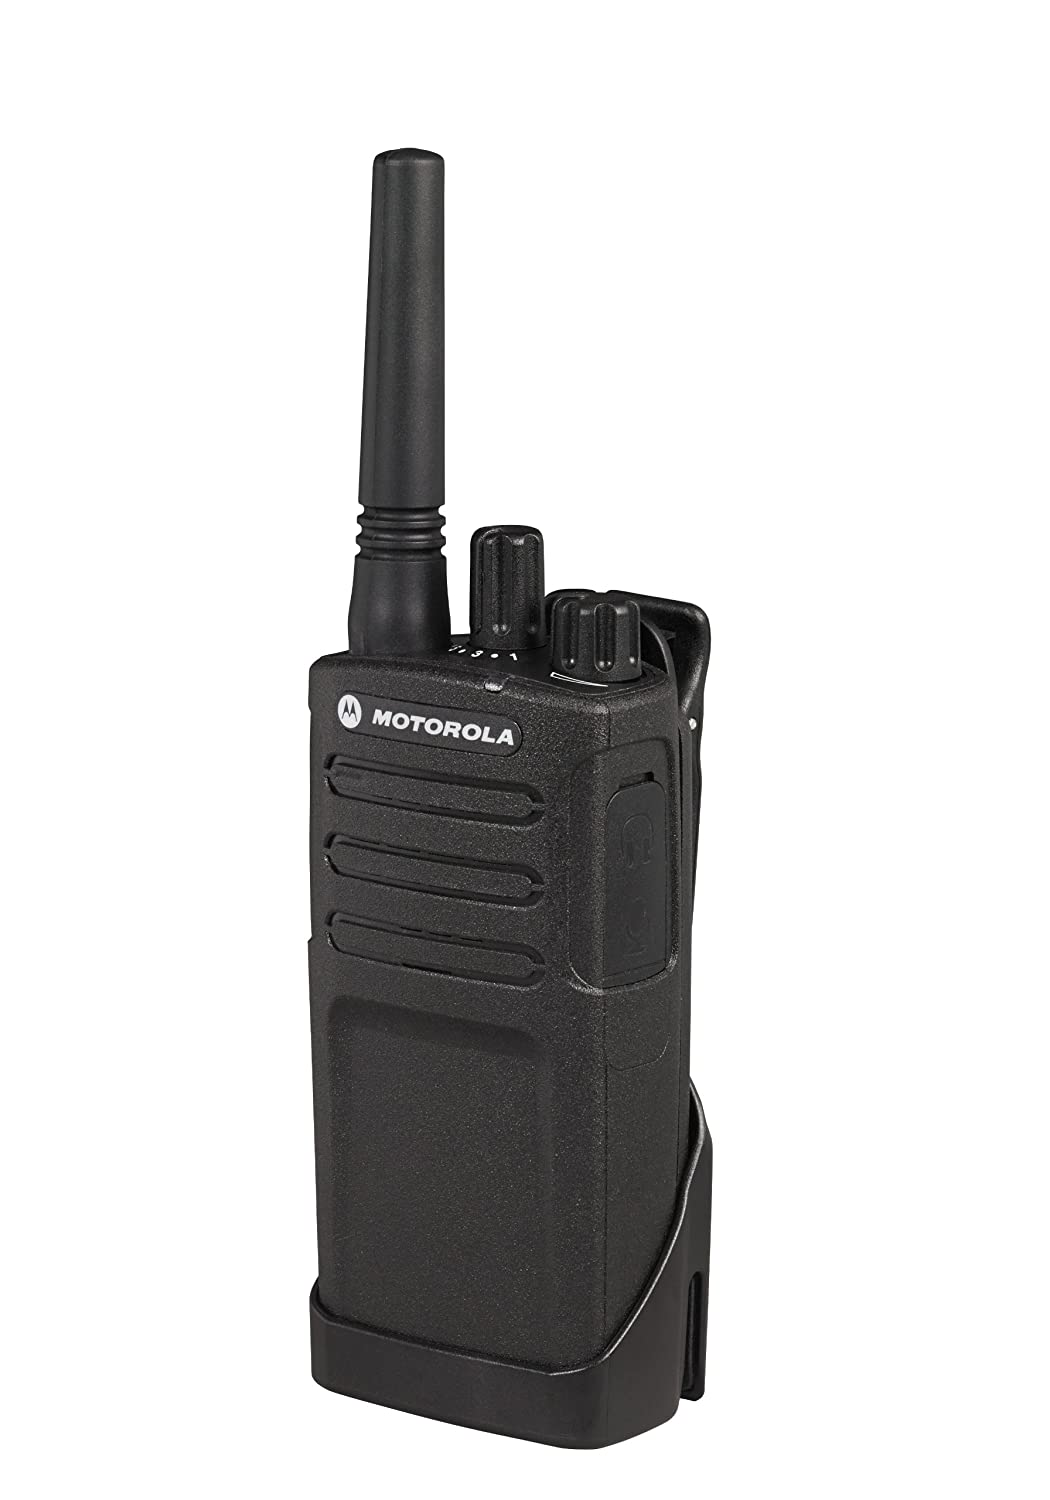 Motorola XT420 PMR 8-channel Two-way radio